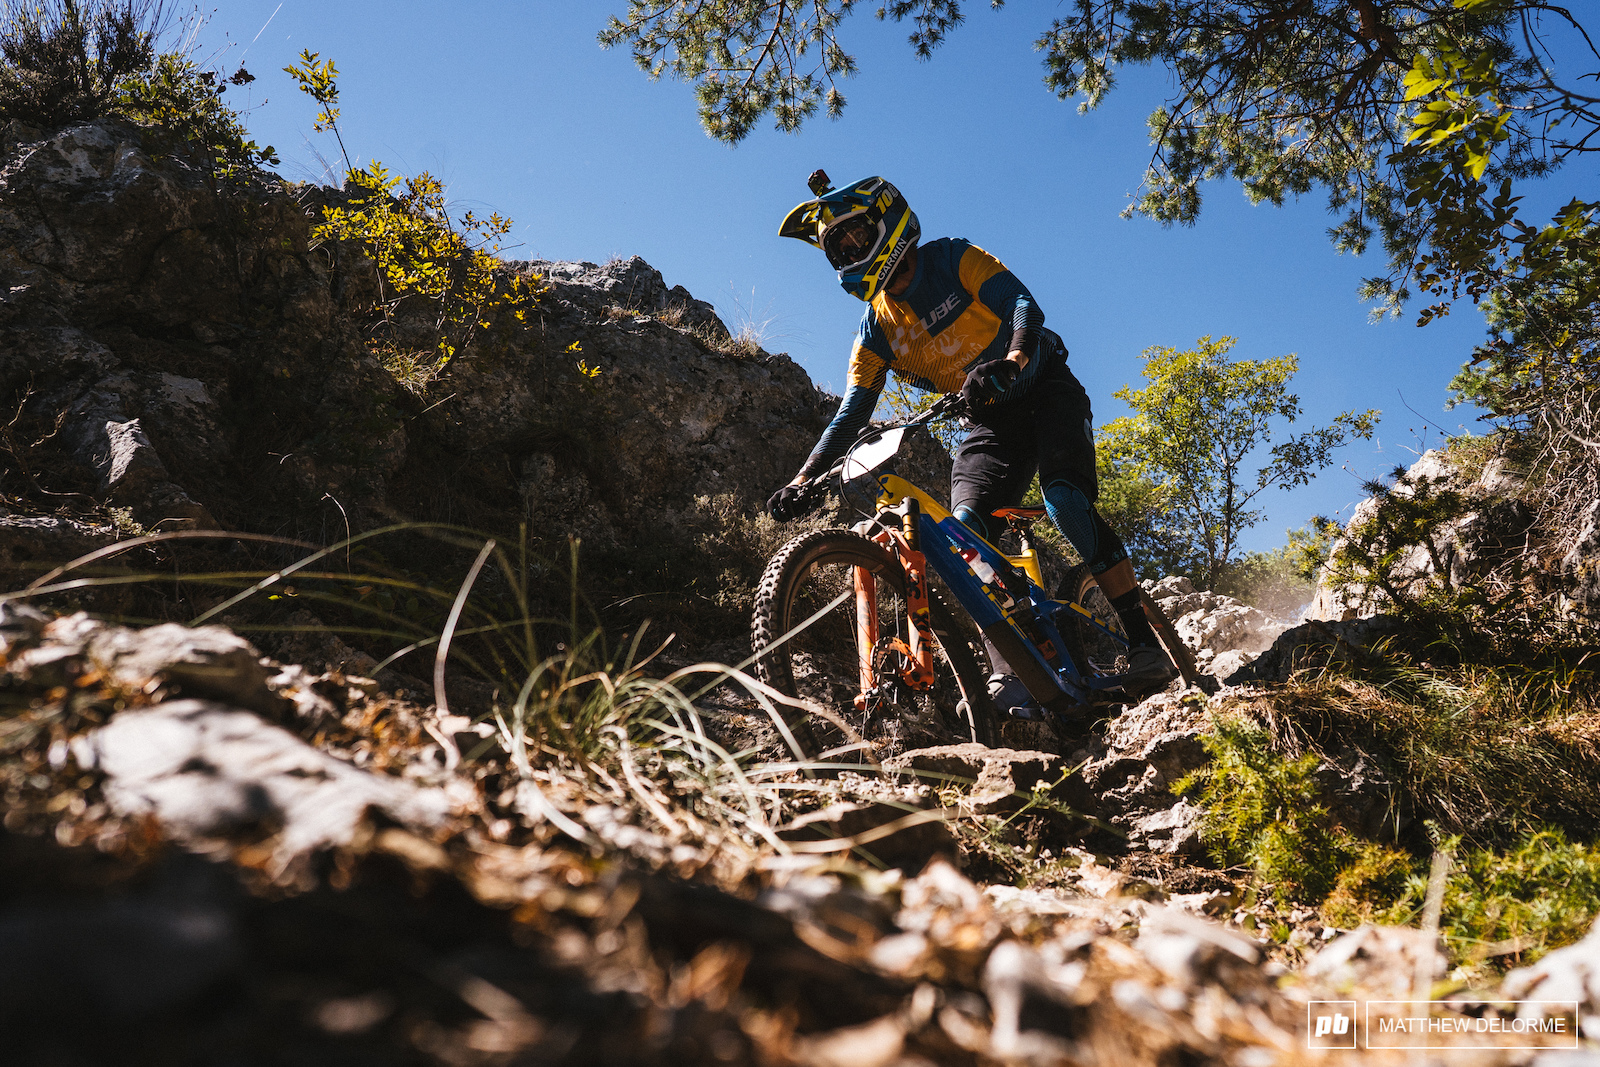 Zakarias Johansen will be looking to follow up Ainsa with another top ten result. This may be the place to do it.